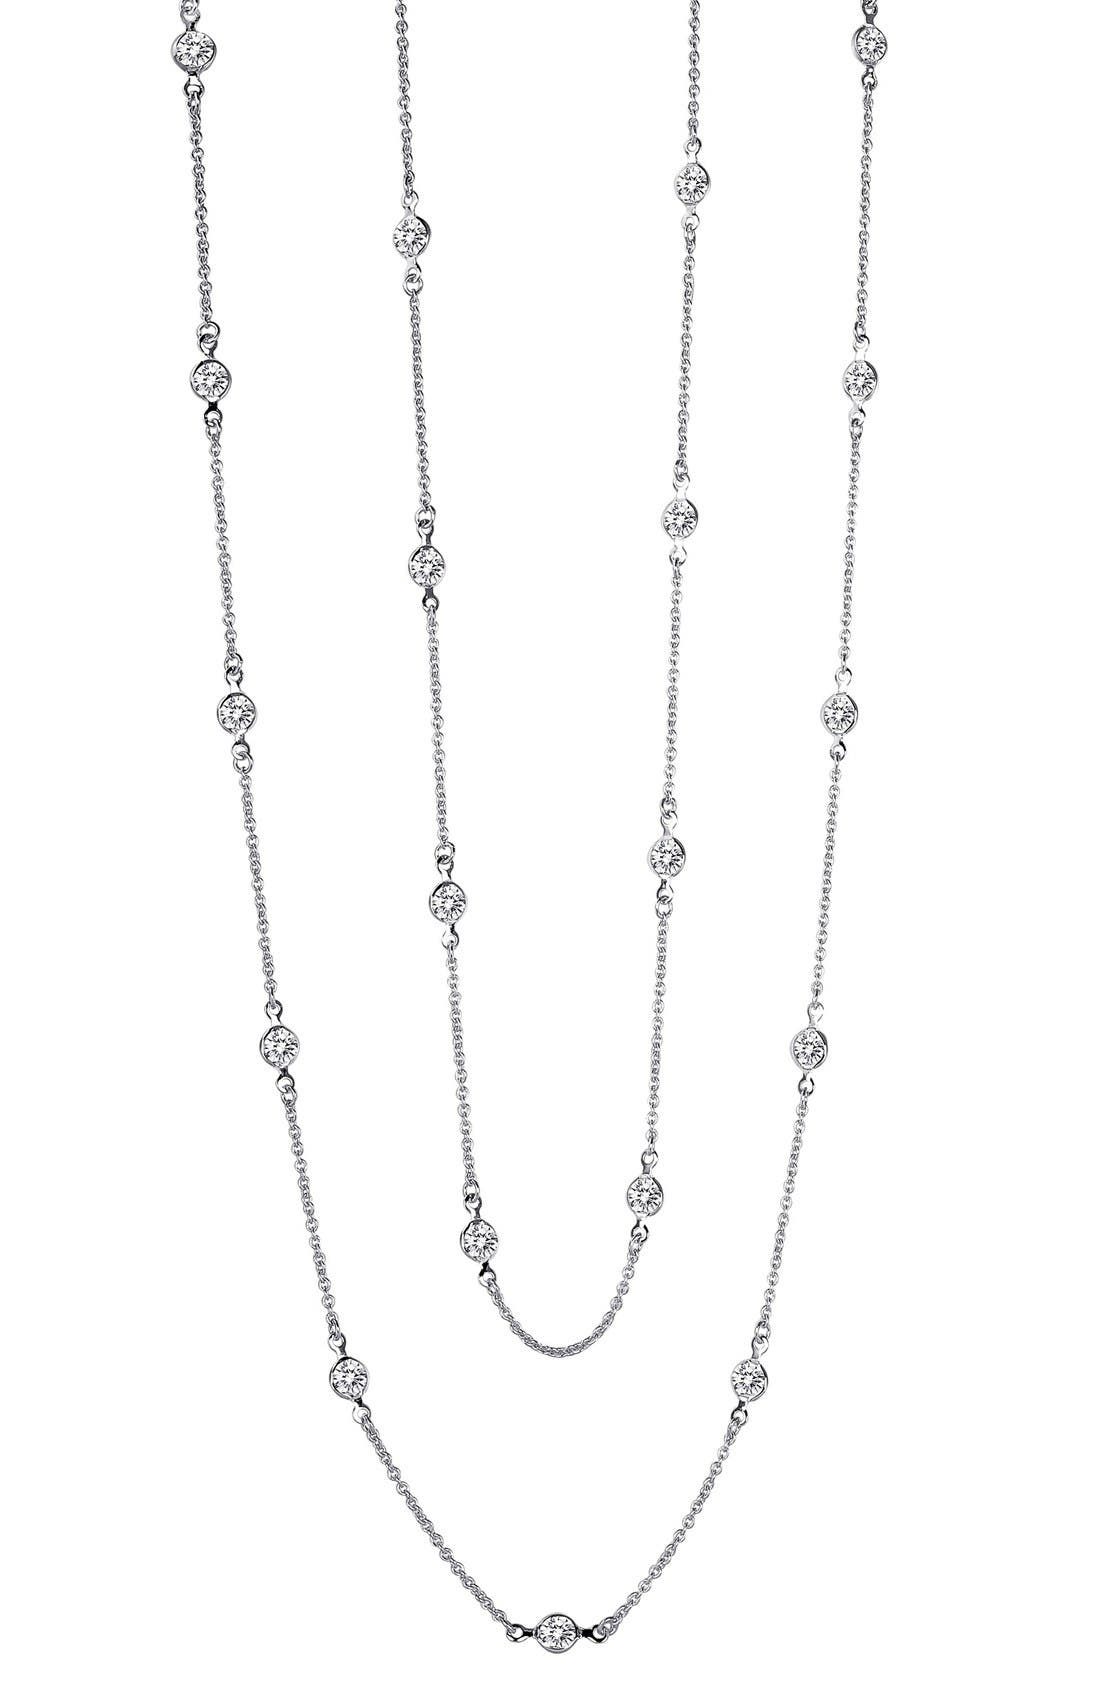 Station Necklace,                             Main thumbnail 1, color,                             SILVER